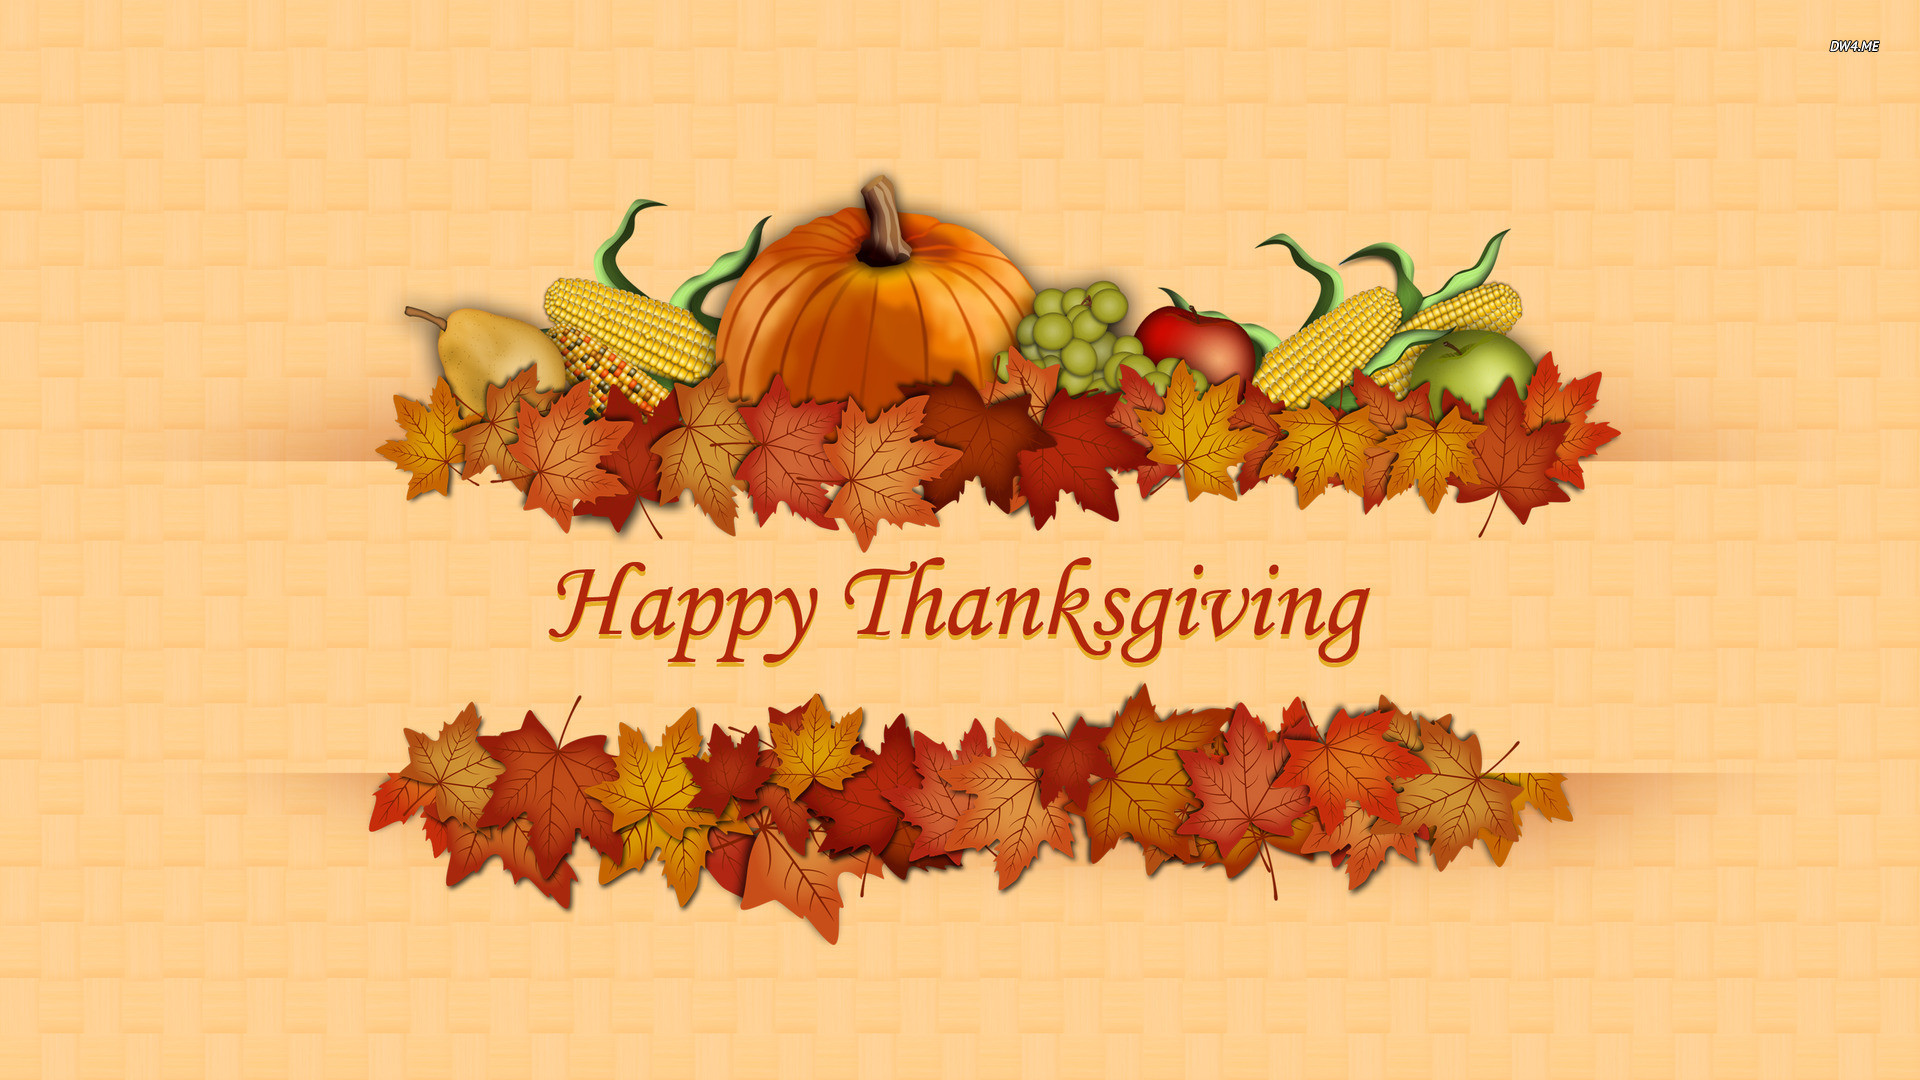 1920x1080 Free Thanksgiving Wallpapers for iPad iPad 2: Giving Thanks | Epic Car  Wallpapers | Pinterest | Thanksgiving wallpaper and Wallpaper